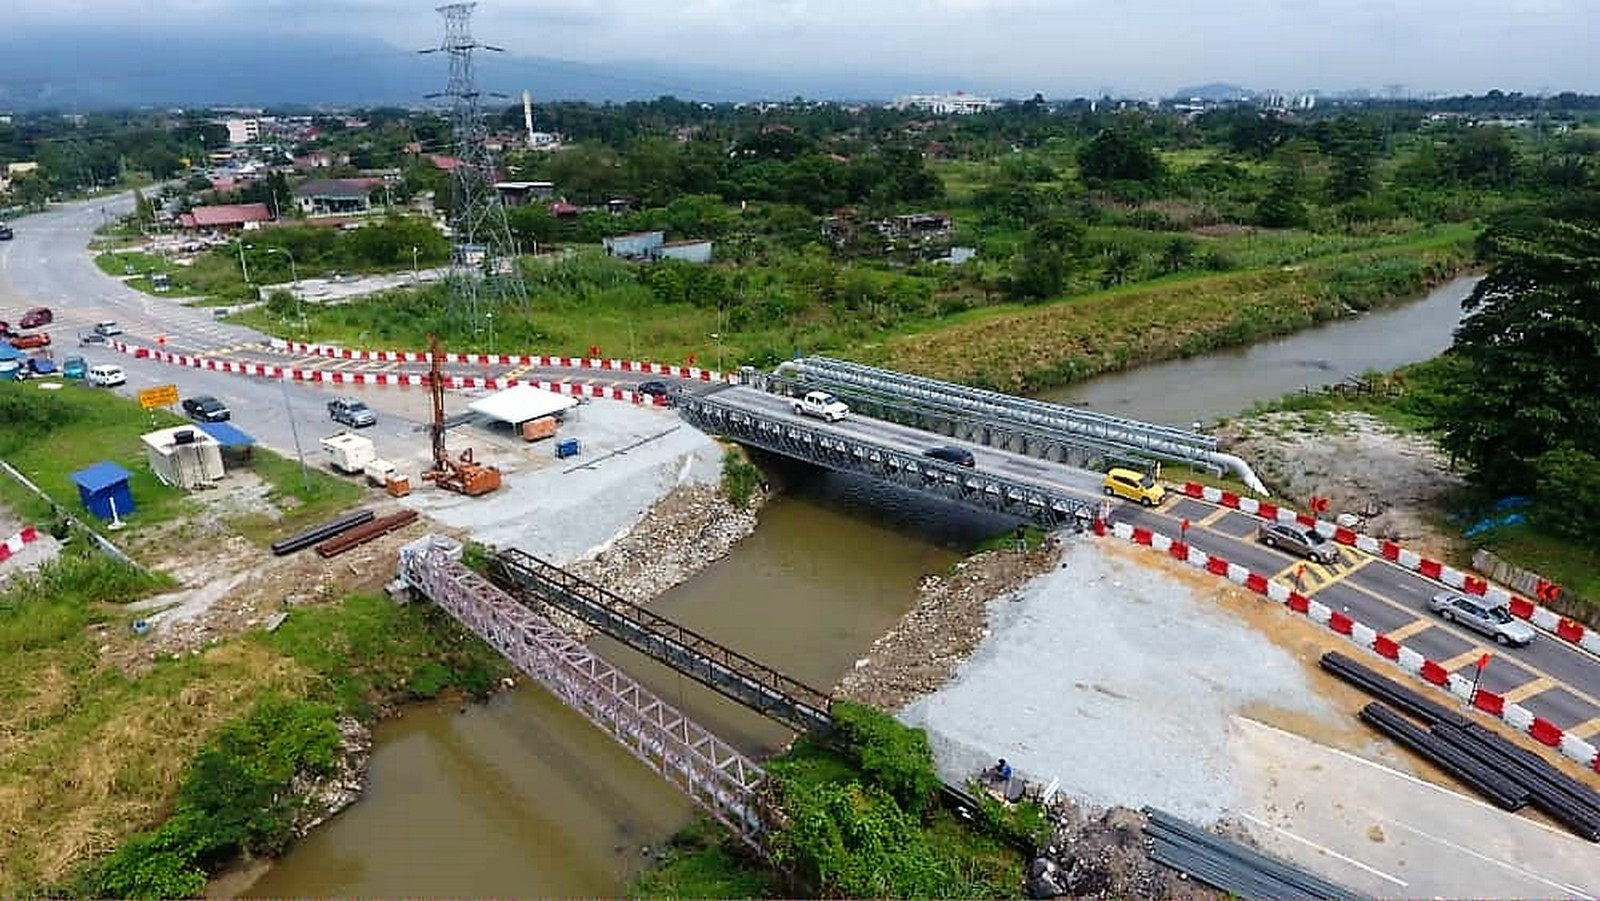 Construction site with temporary bailey bridge installed.